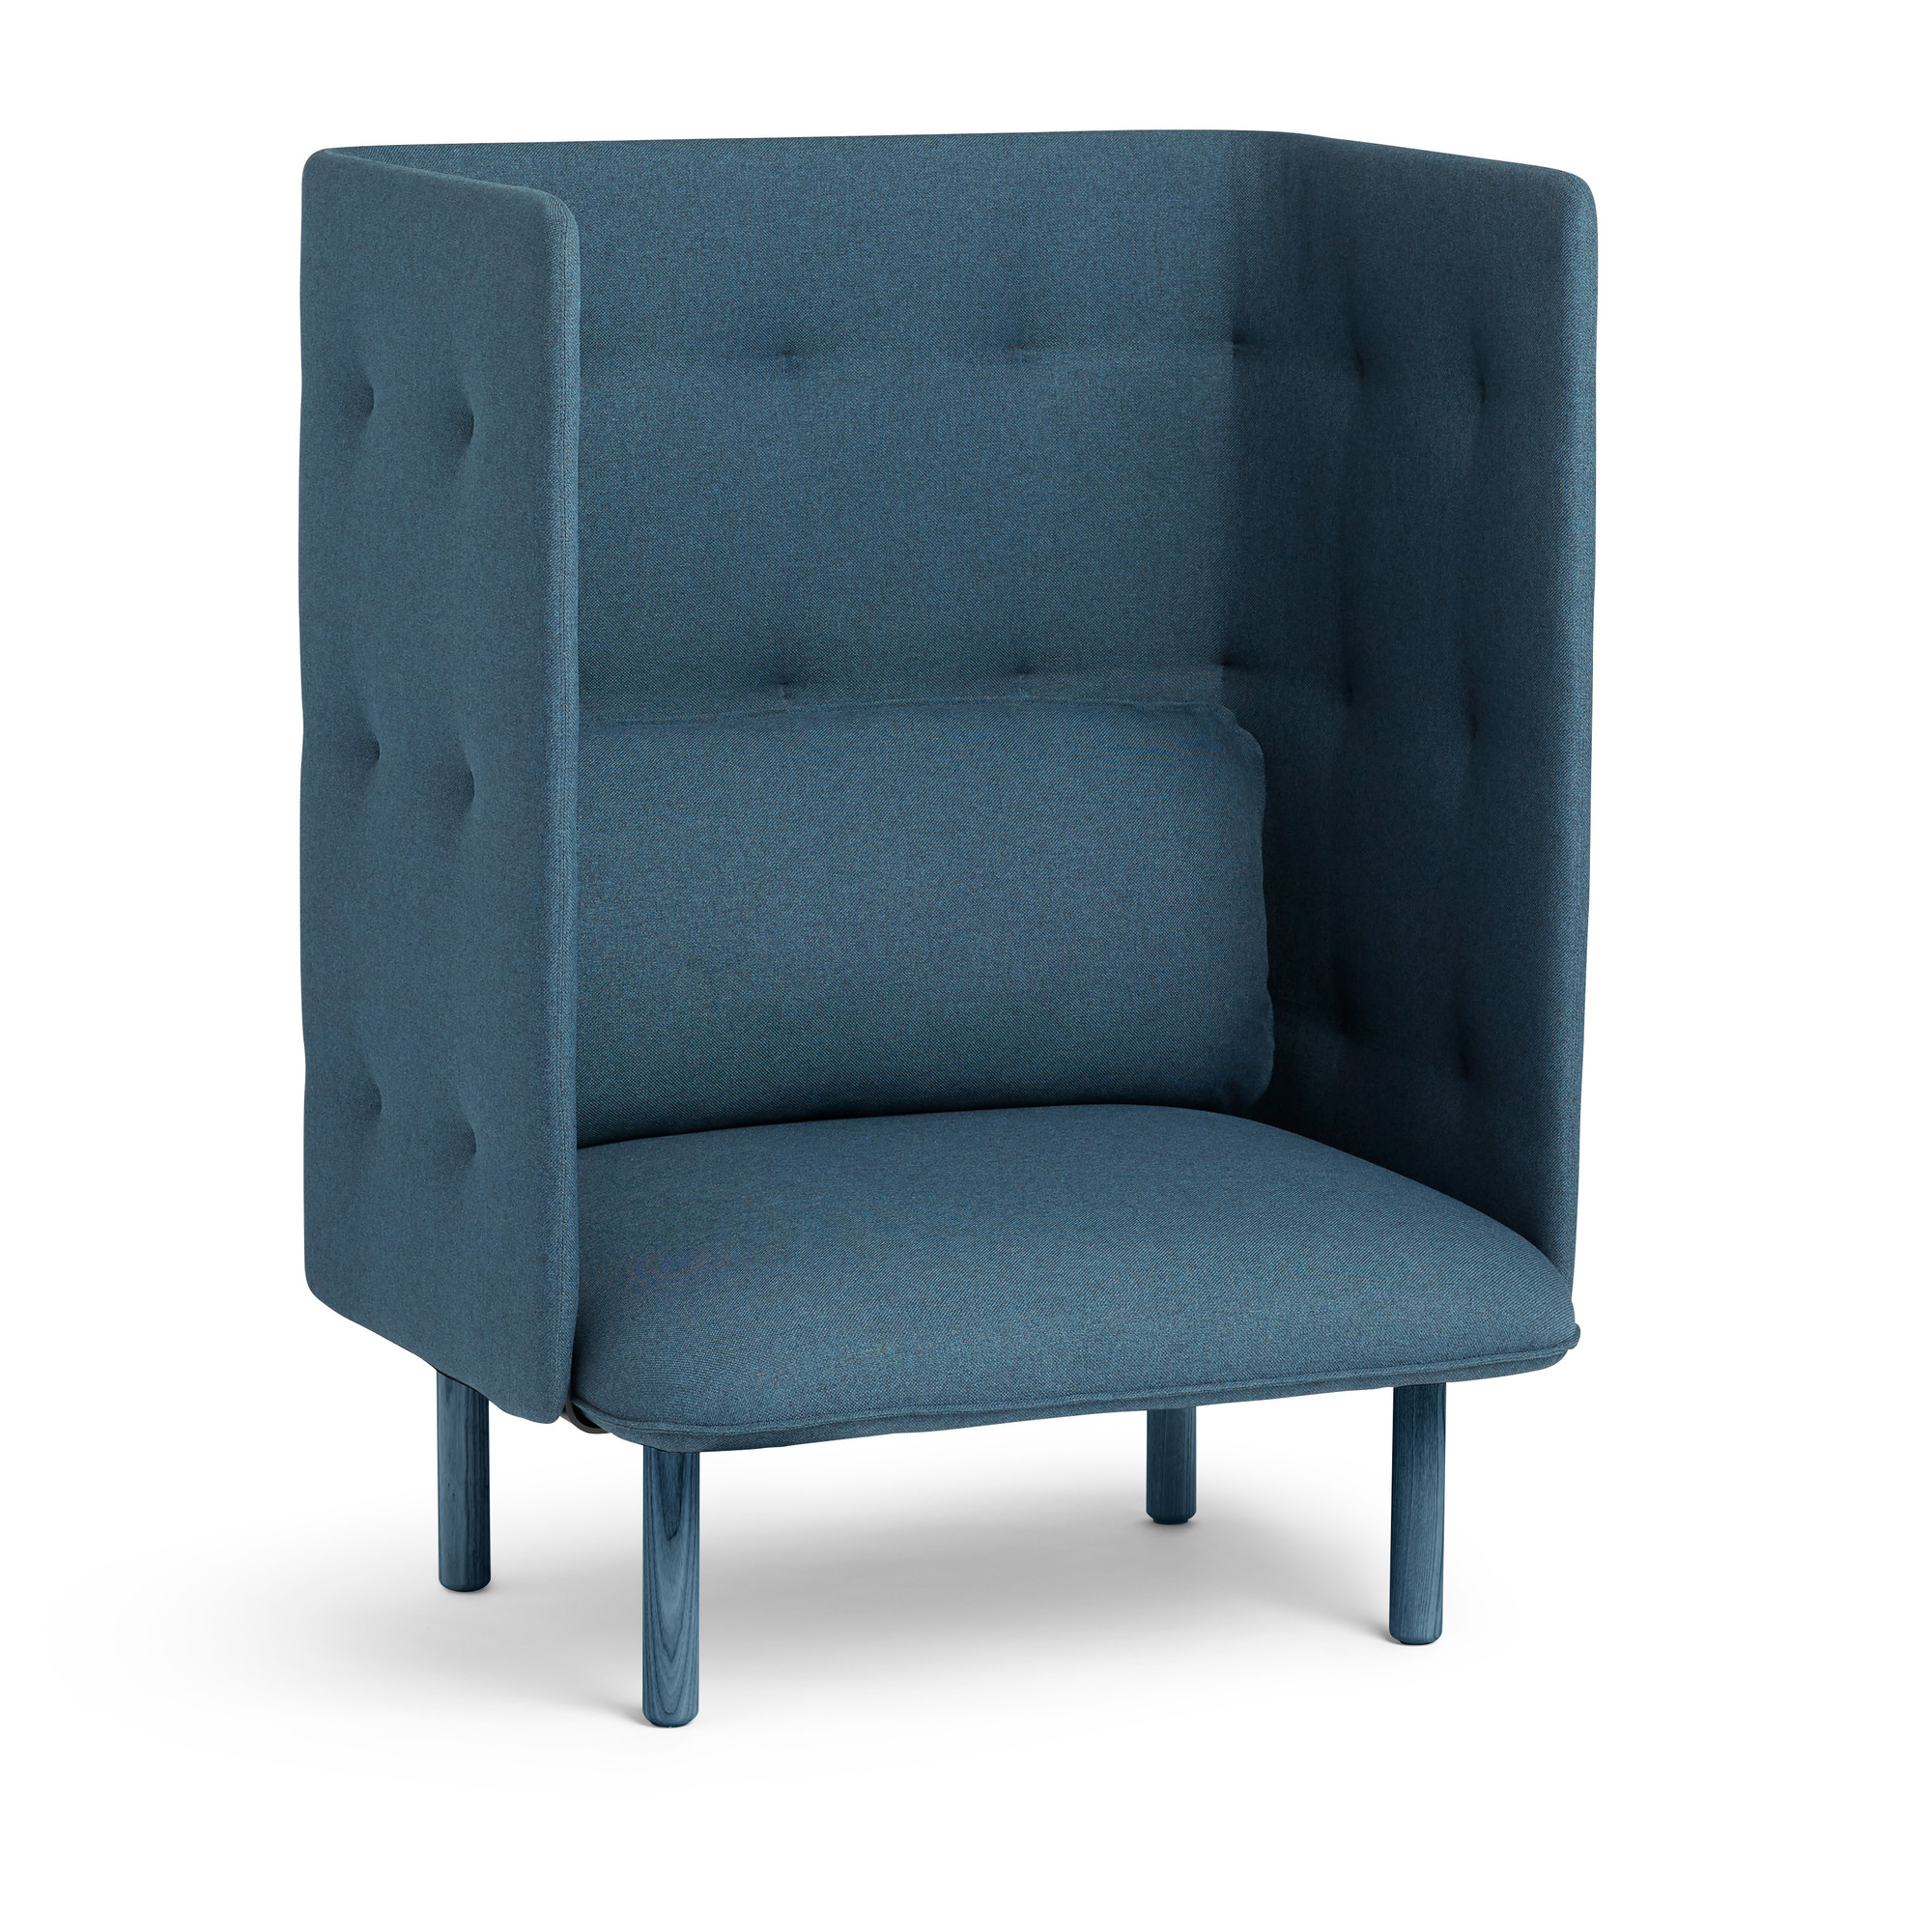 Exceptionnel Dark Blue QT Privacy Lounge Chair,Dark Blue,hi Res